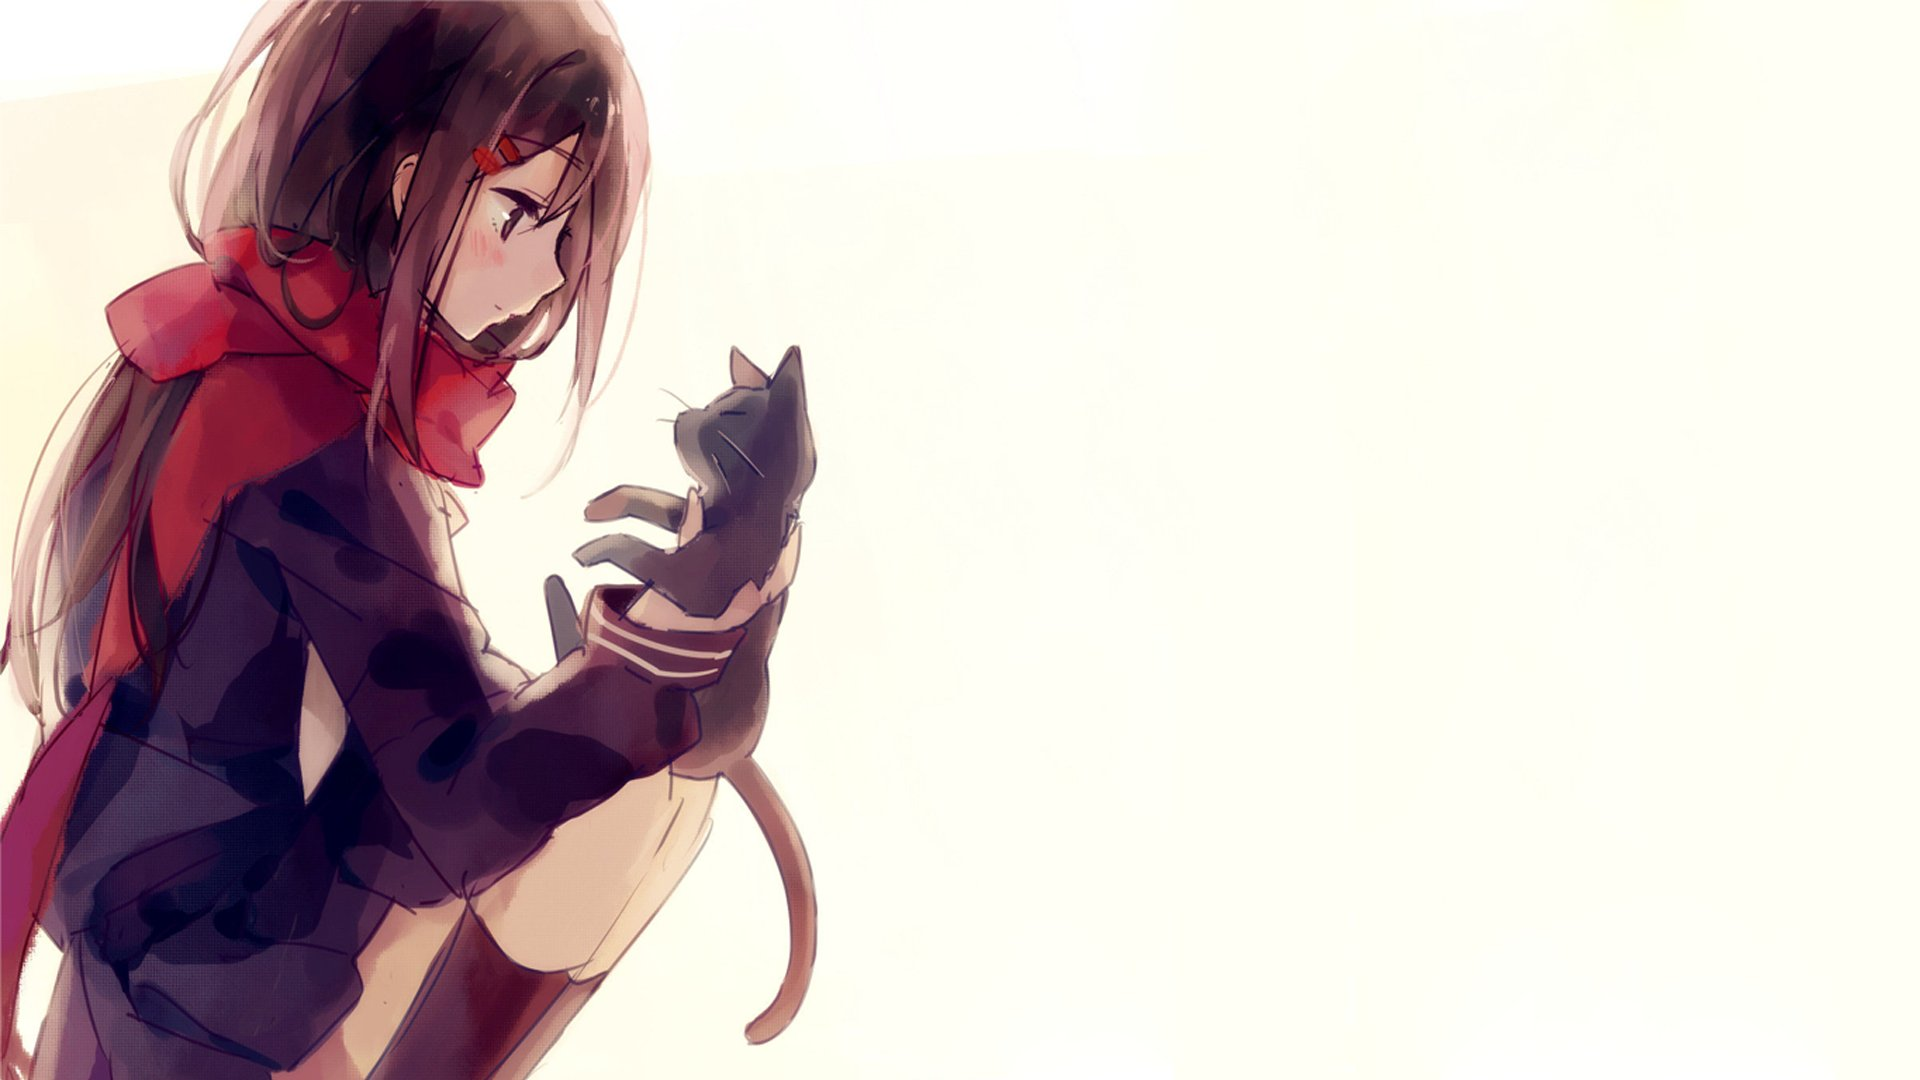 Anime Cat Girl Wallpapers 34 Wallpapers – Adorable Wallpapers